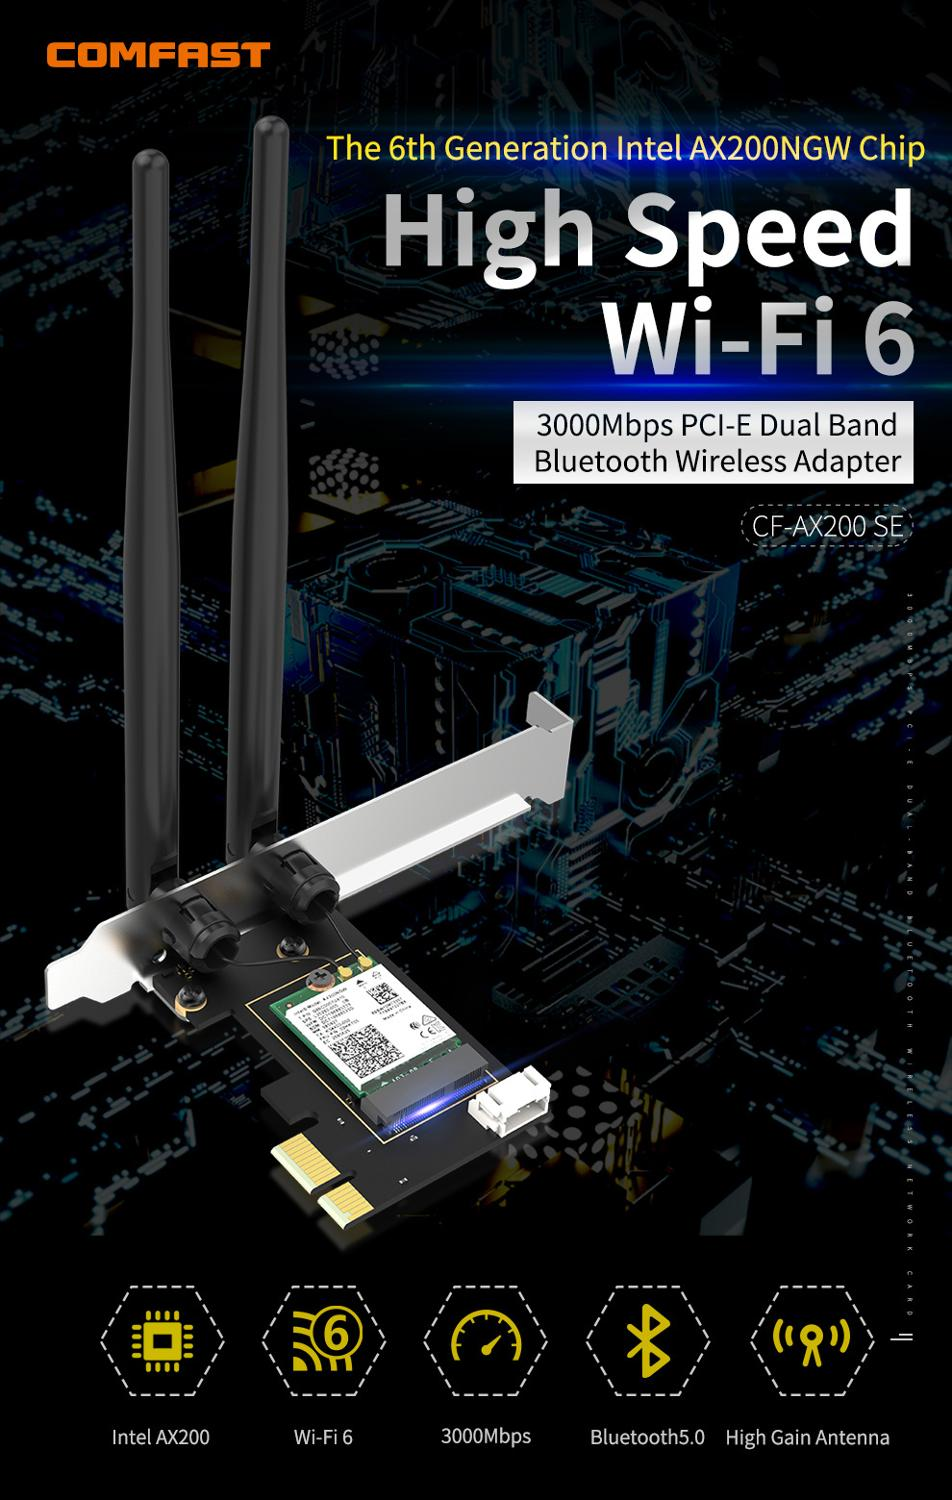 3000Mbps Dual Band Wireless Desktop PCIe For Intel AX200 Pro Card 802.11ax 2.4G/5Ghz Bluetooth 5.1 PCI Express WiFi 6 E Adapter 4